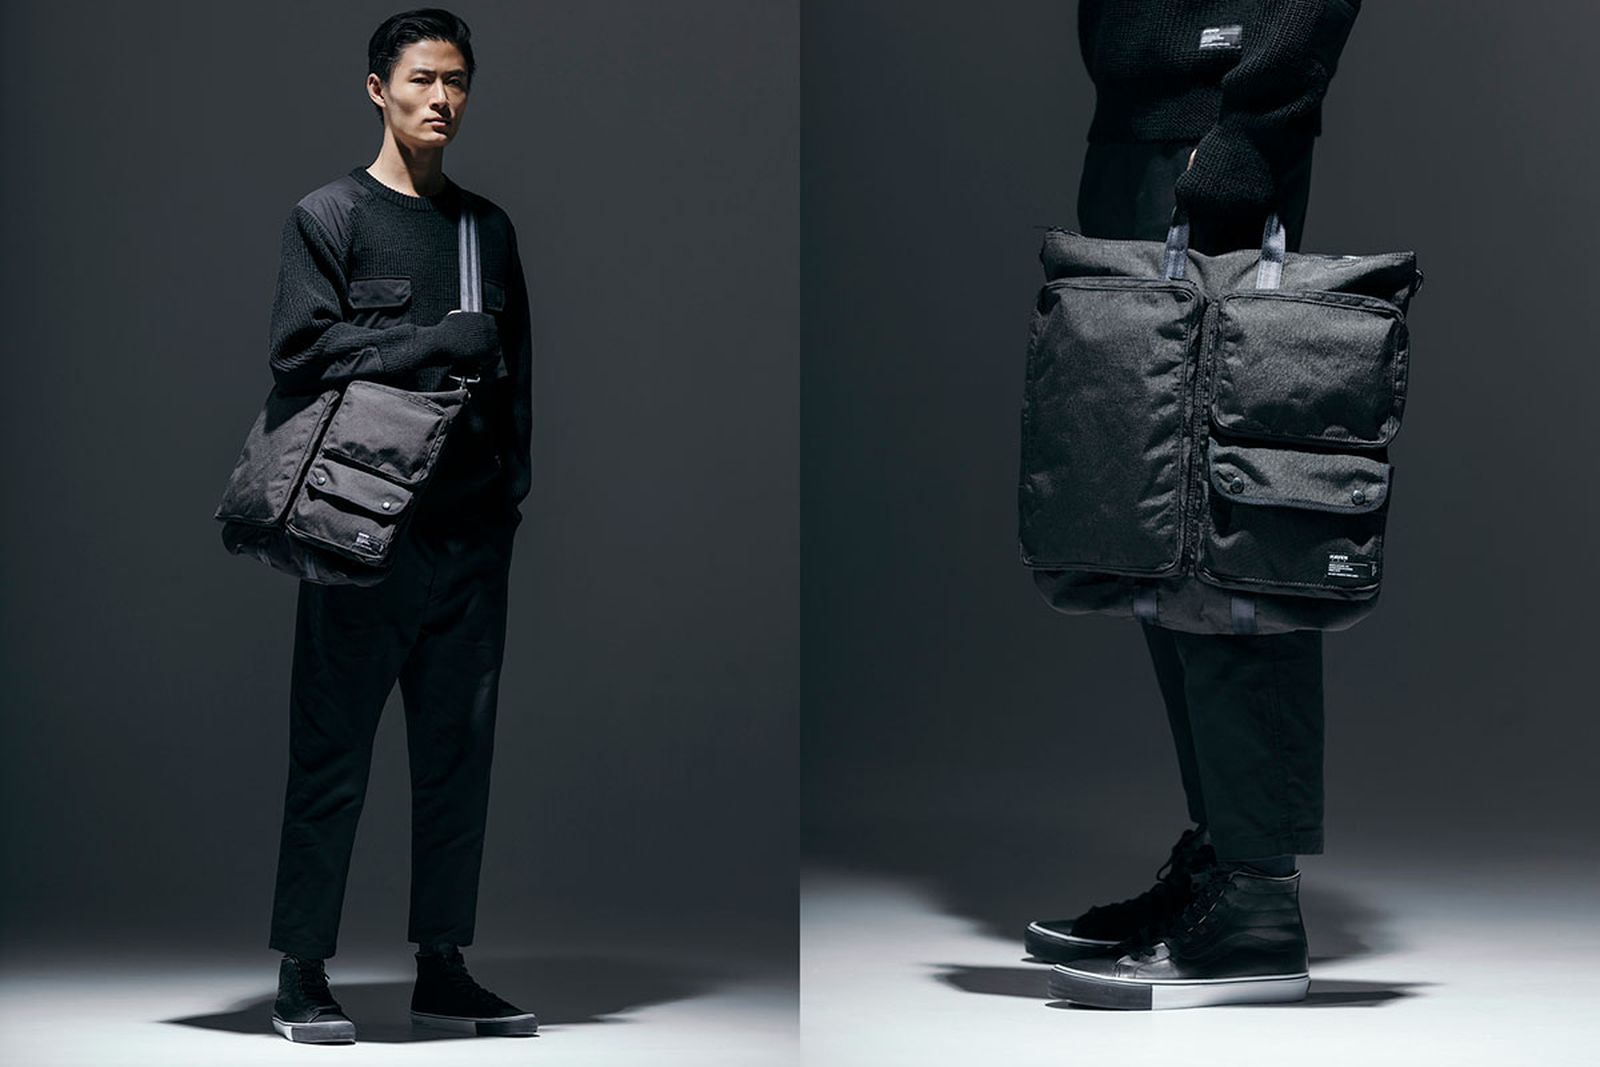 haven x porter bags on model grey background